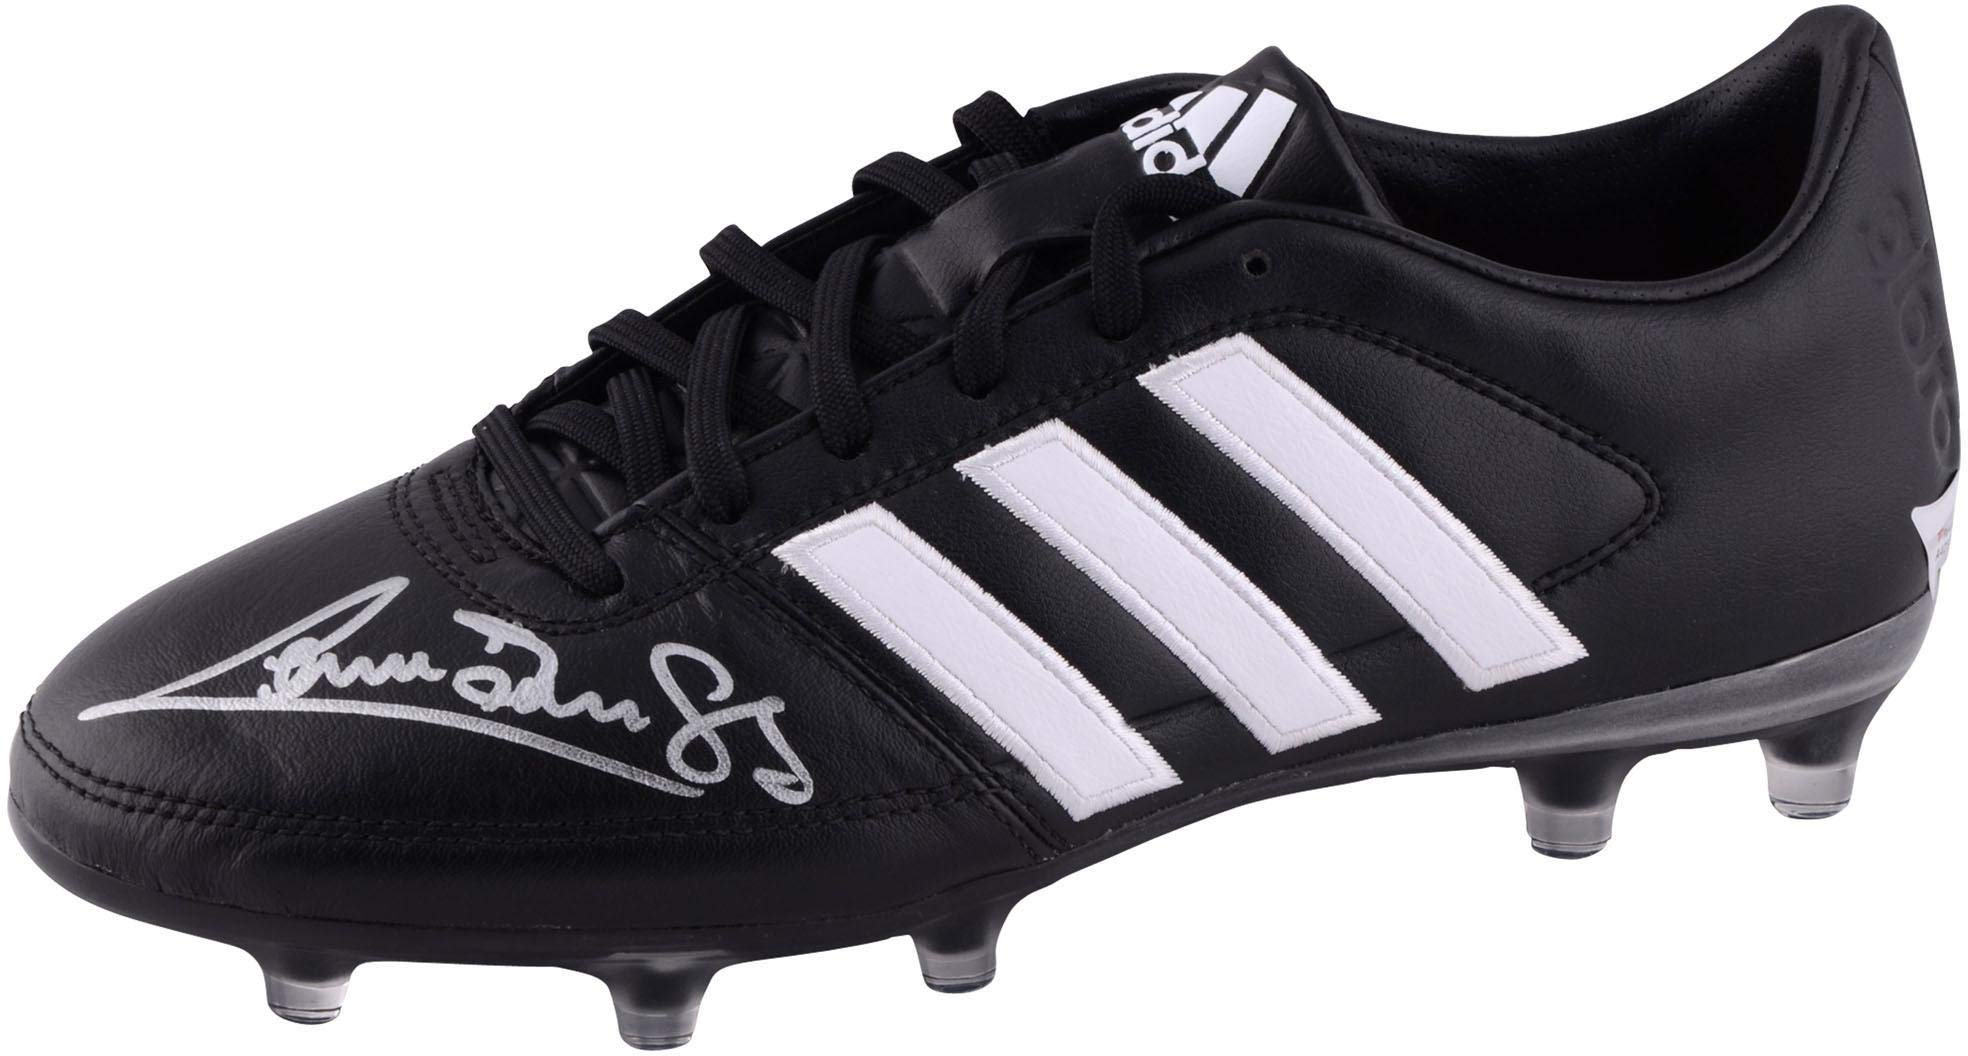 Graeme Souness Liverpool Autographed Black and White Adidas Gloro Soccer Cleat ICONS Fanatics Authentic Certified